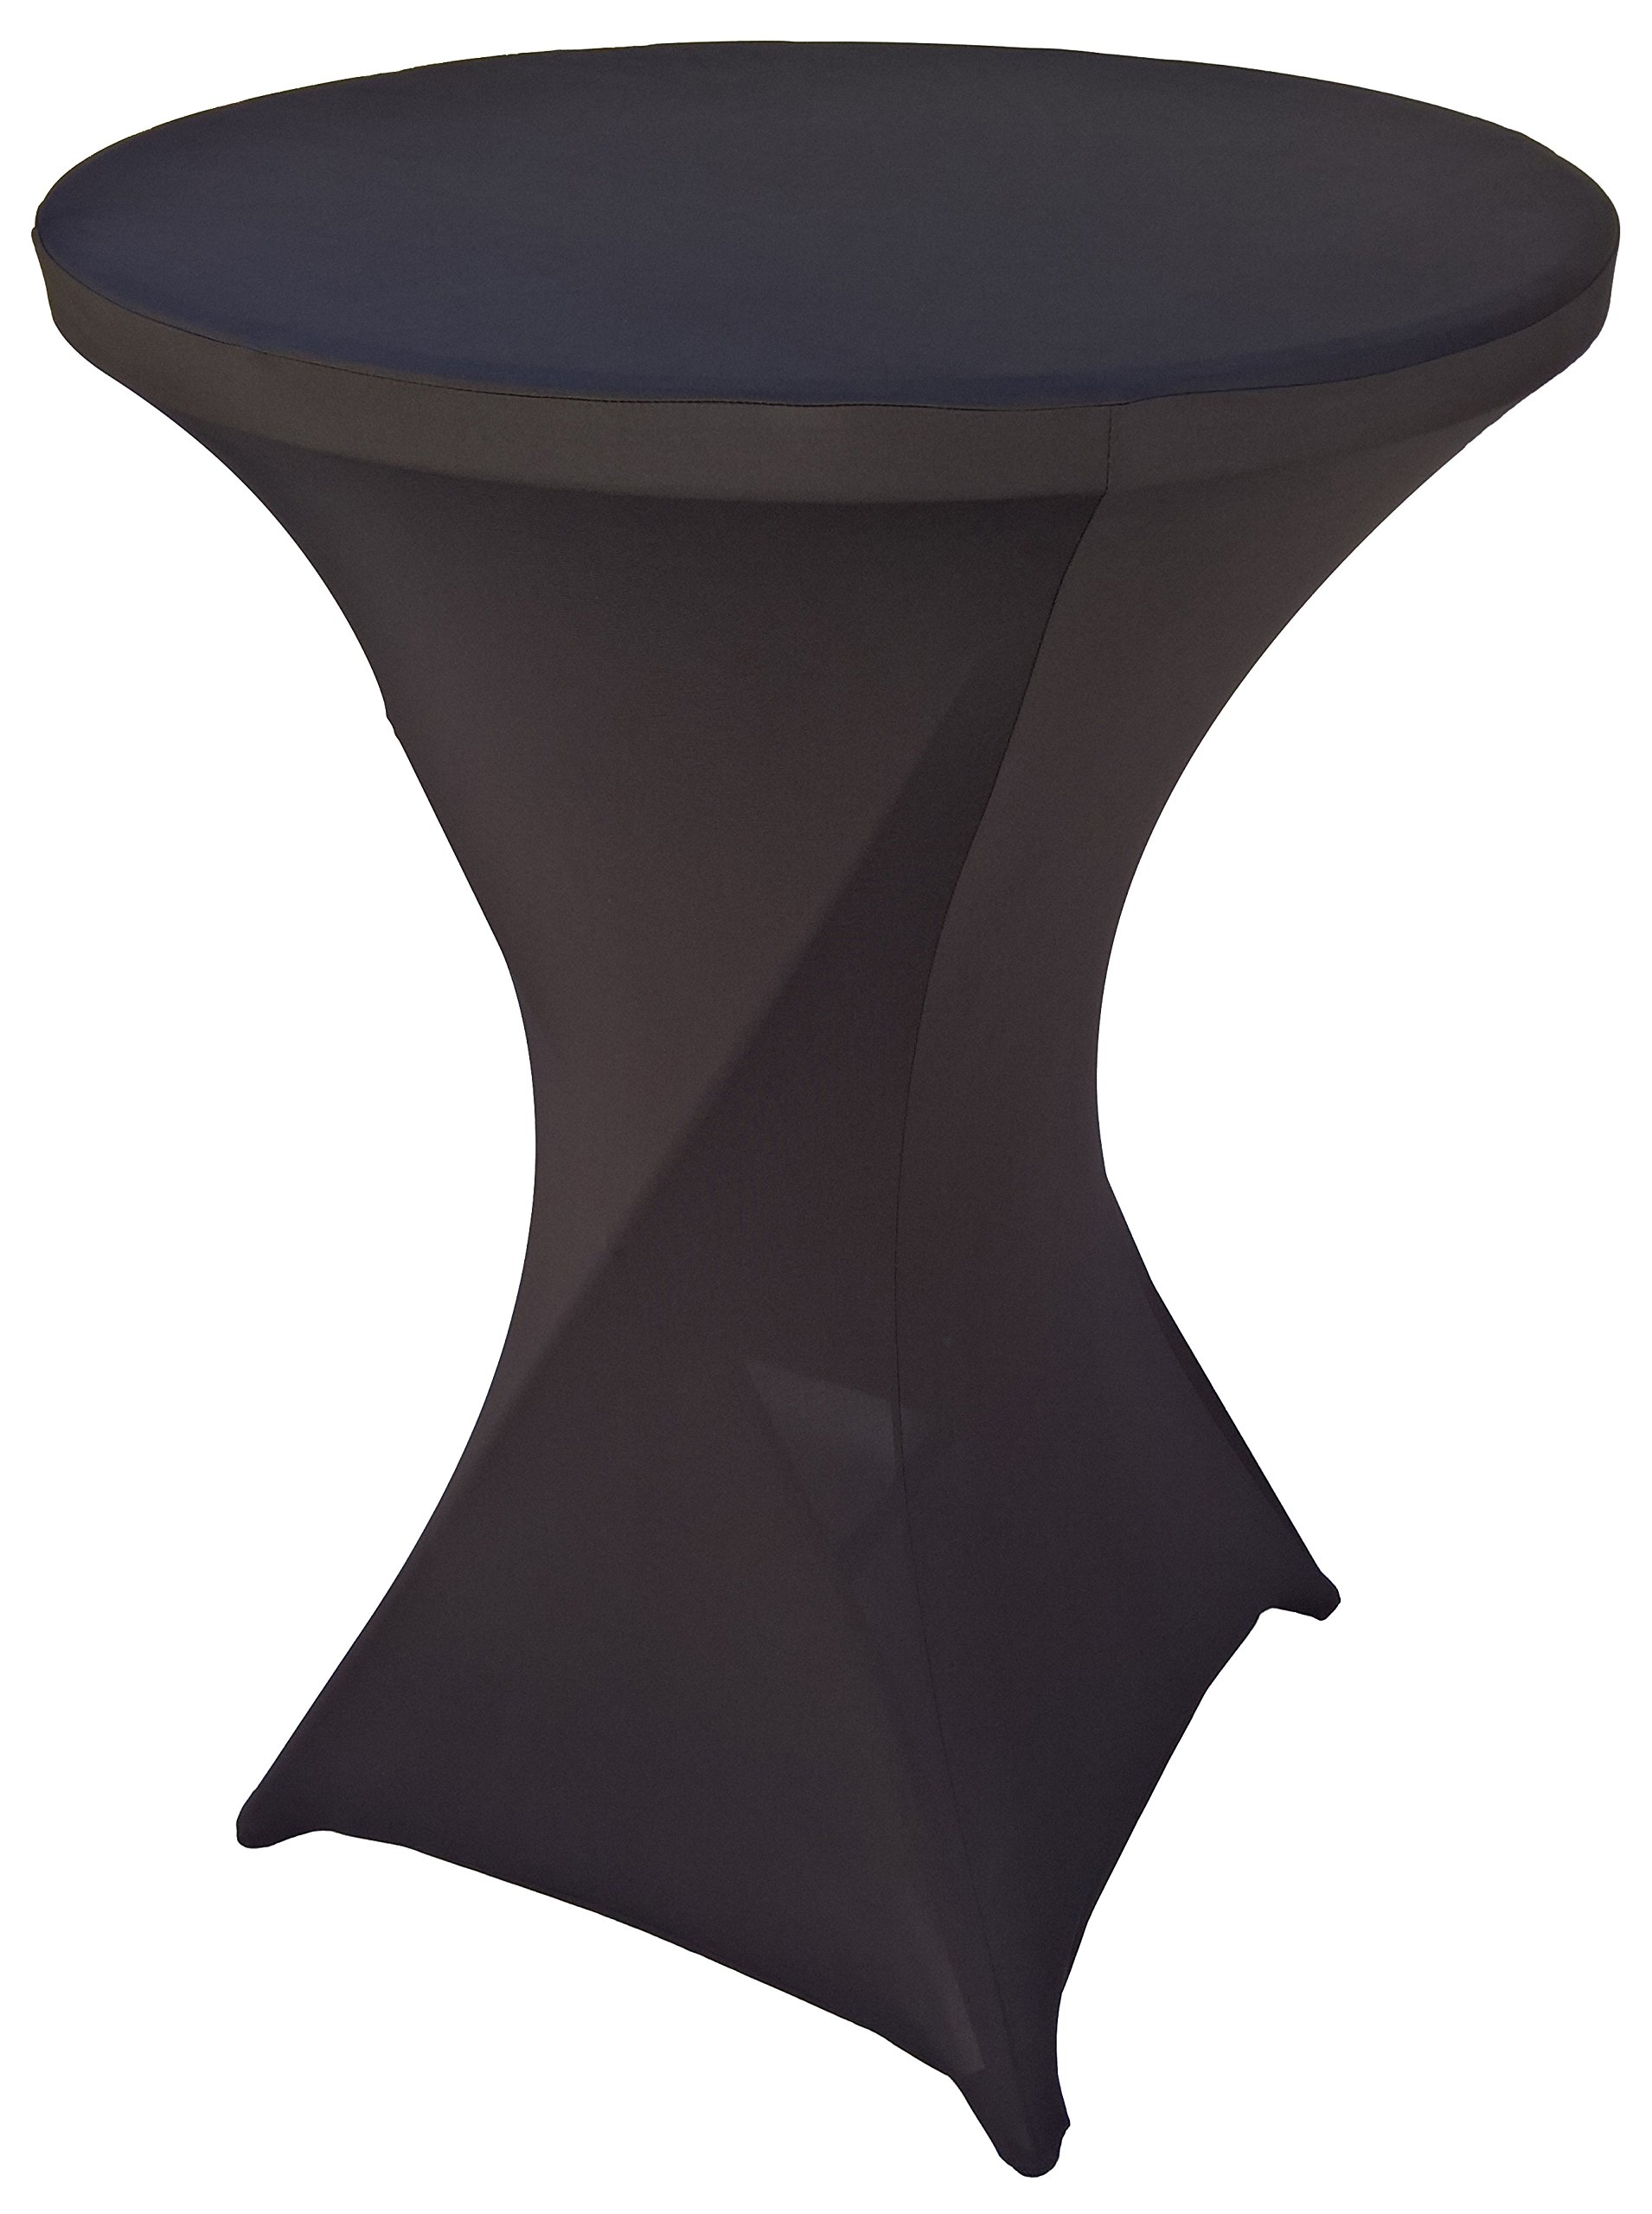 Goldstream Point Black 32 Inch Round x 43 Inch Tall Spandex Cocktail Tablecloth Folding Cover Stretch